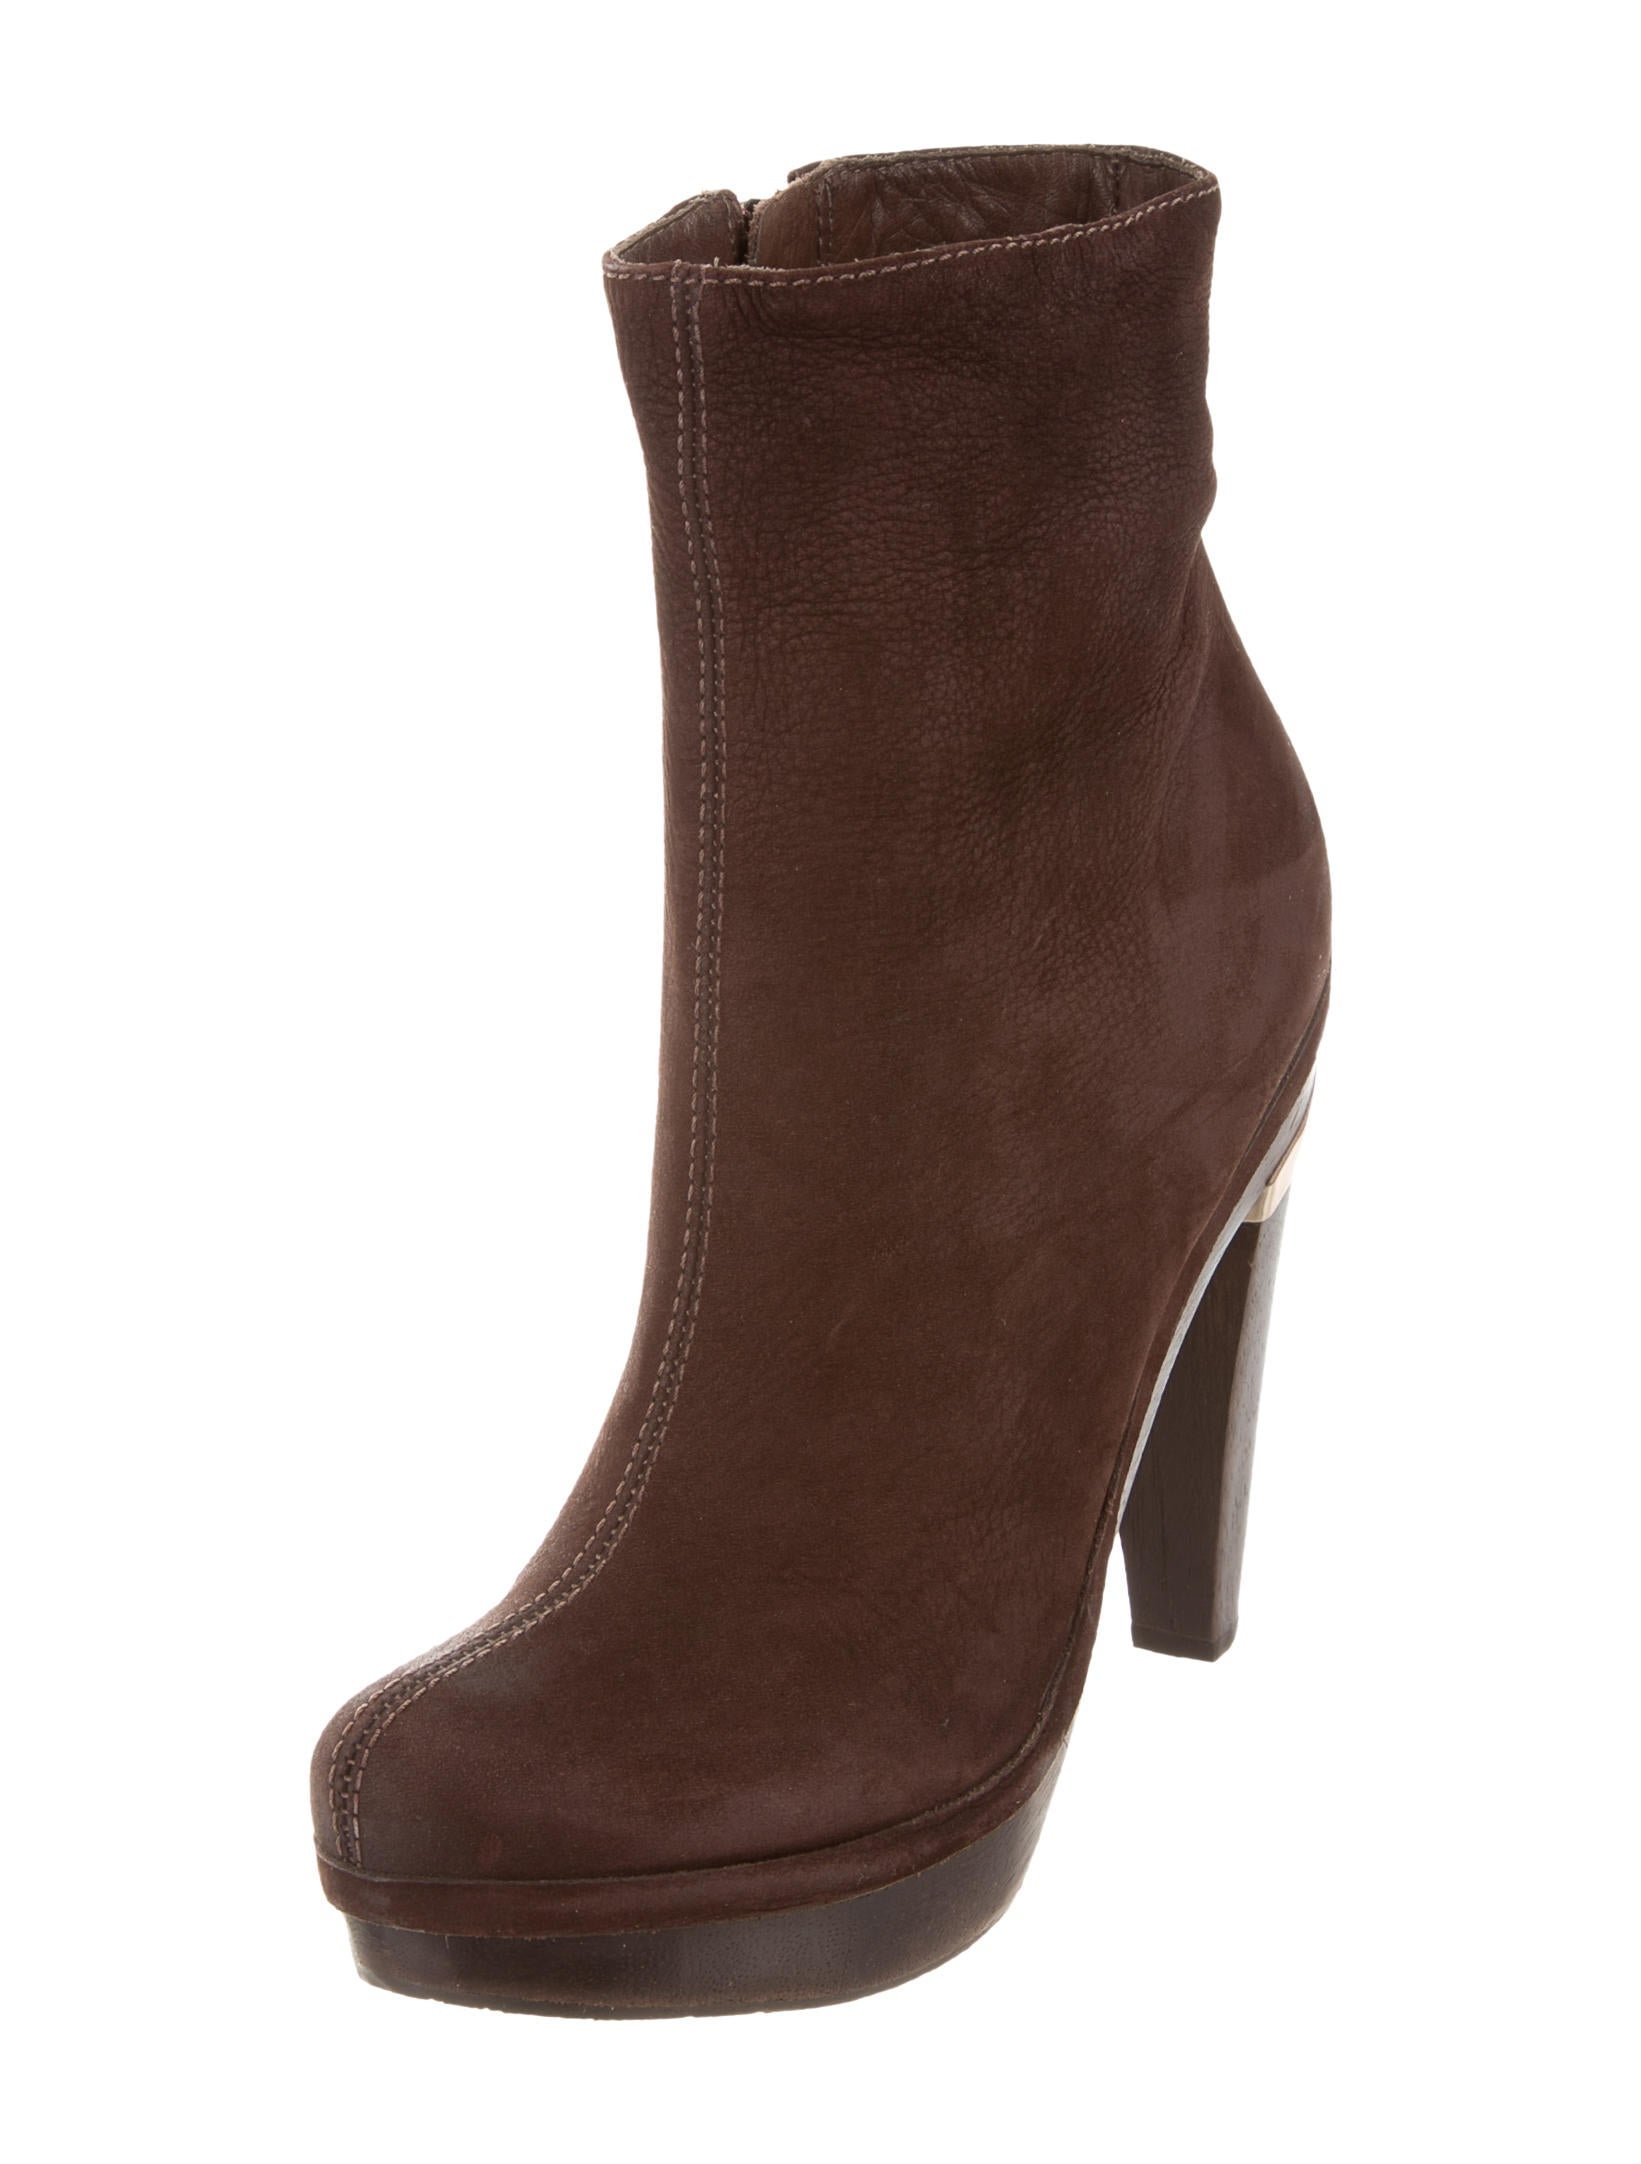 Shop leather platform ankle boots at Neiman Marcus, where you will find free shipping on the latest in fashion from top designers.